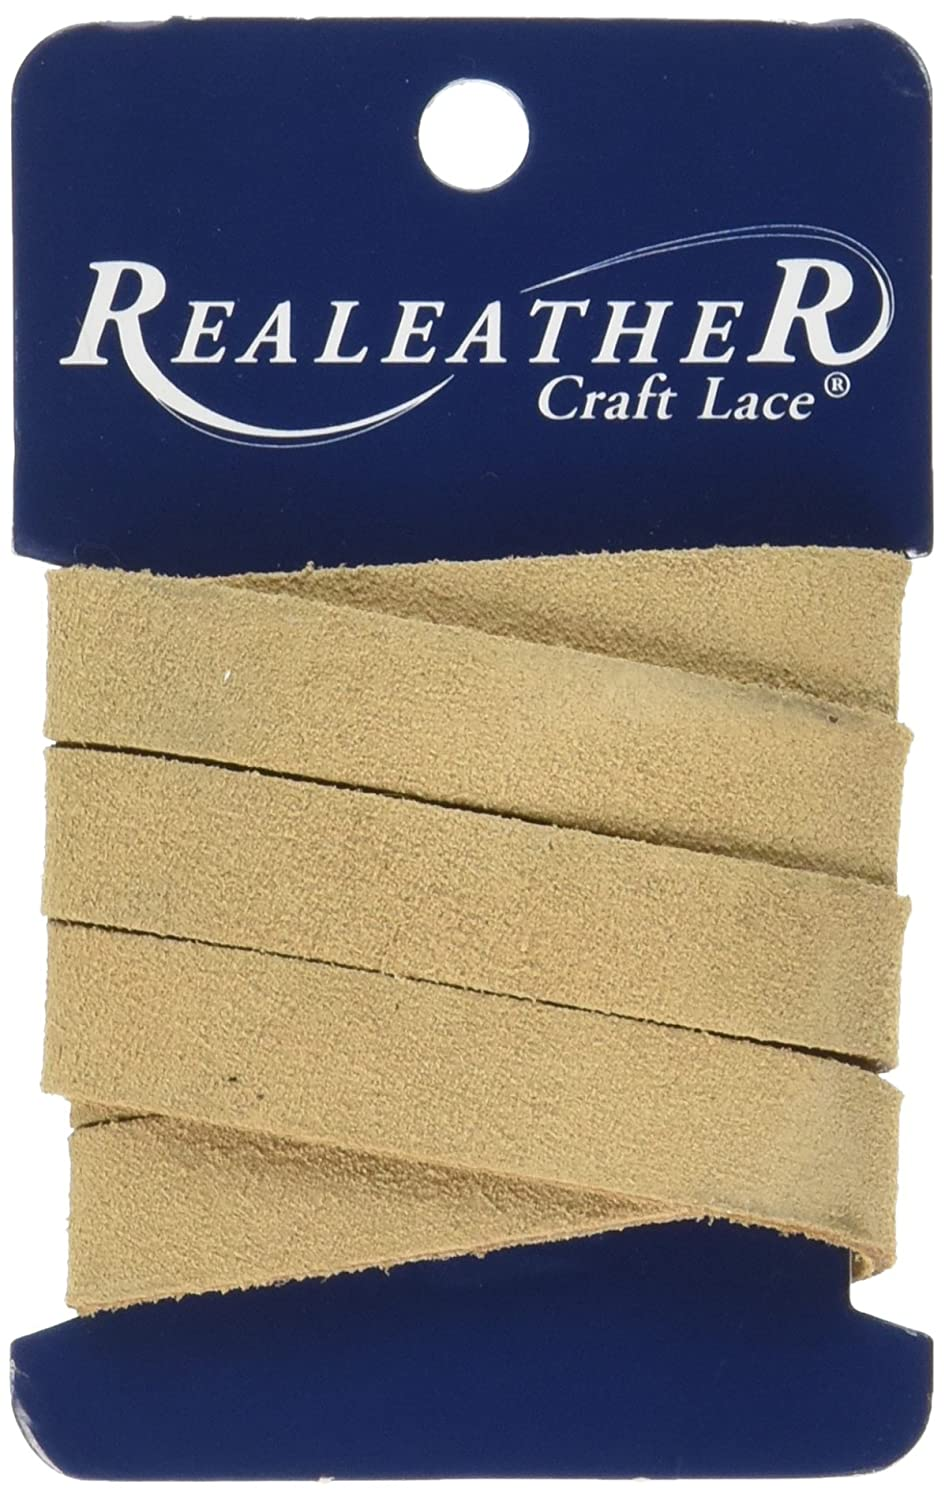 Realeather Crafts Suede Strip, 0.5 by 36, Beige by Realeather Crafts B011Q1OR00